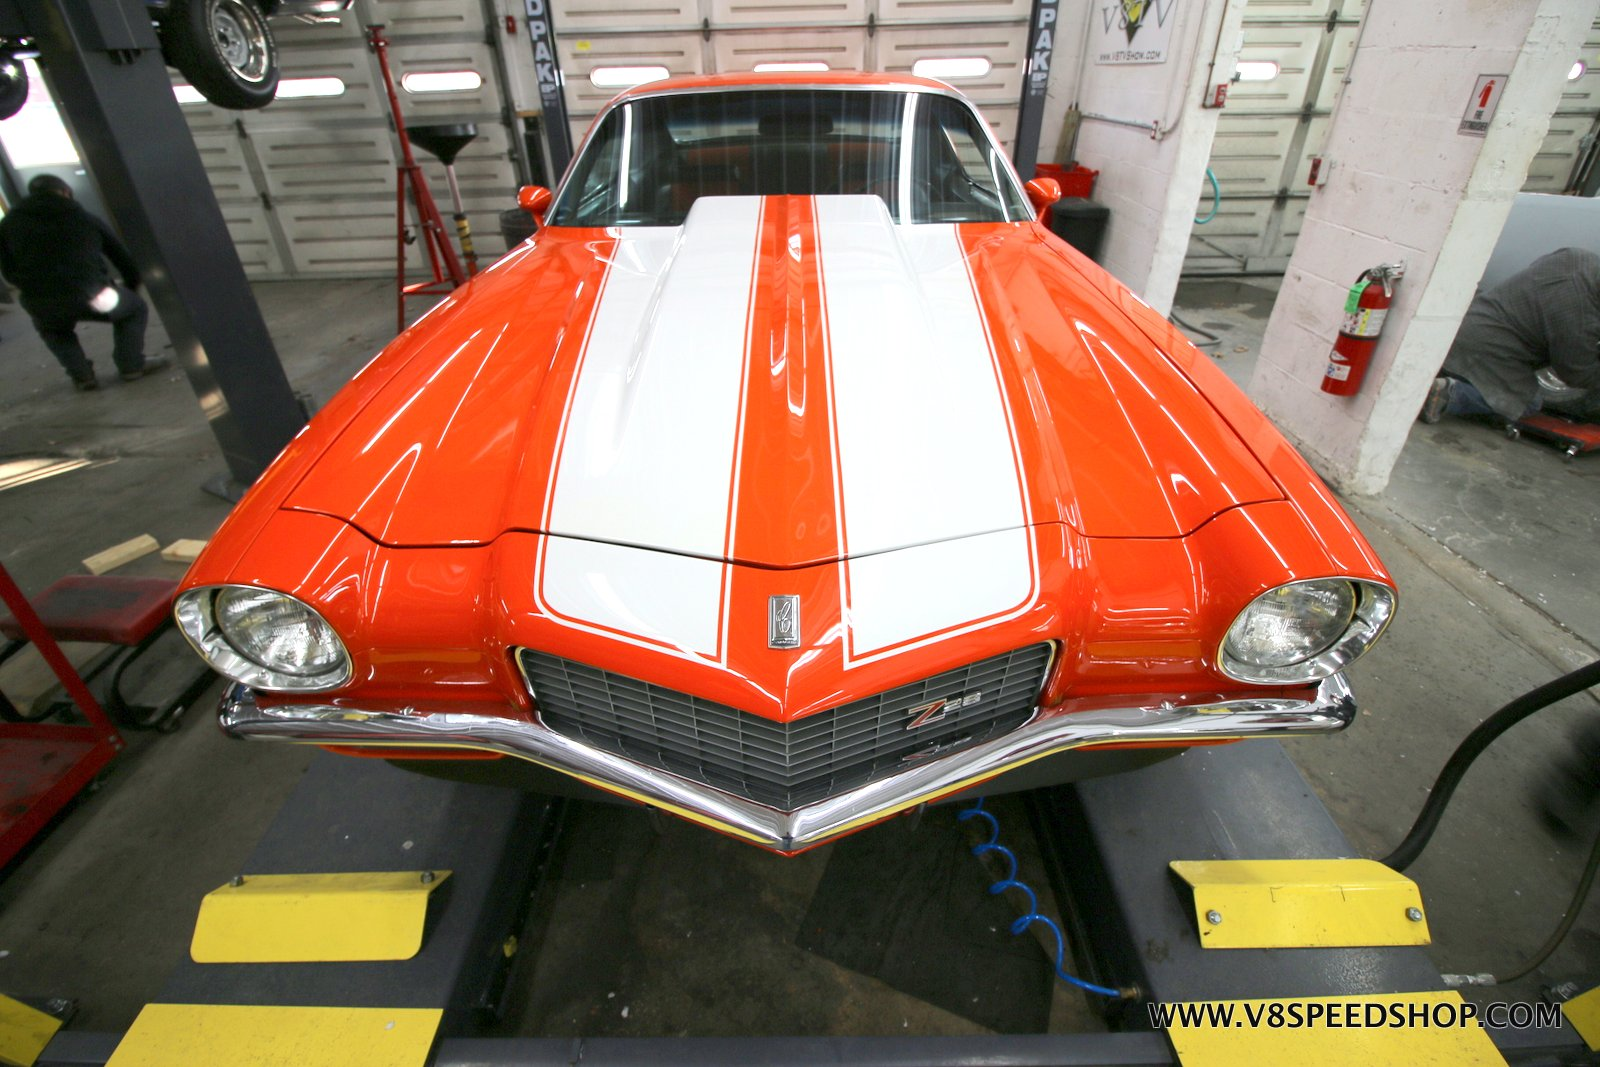 1970 Chevrolet Camaro Z28 Photo Gallery at V8 Speed & Resto Shop